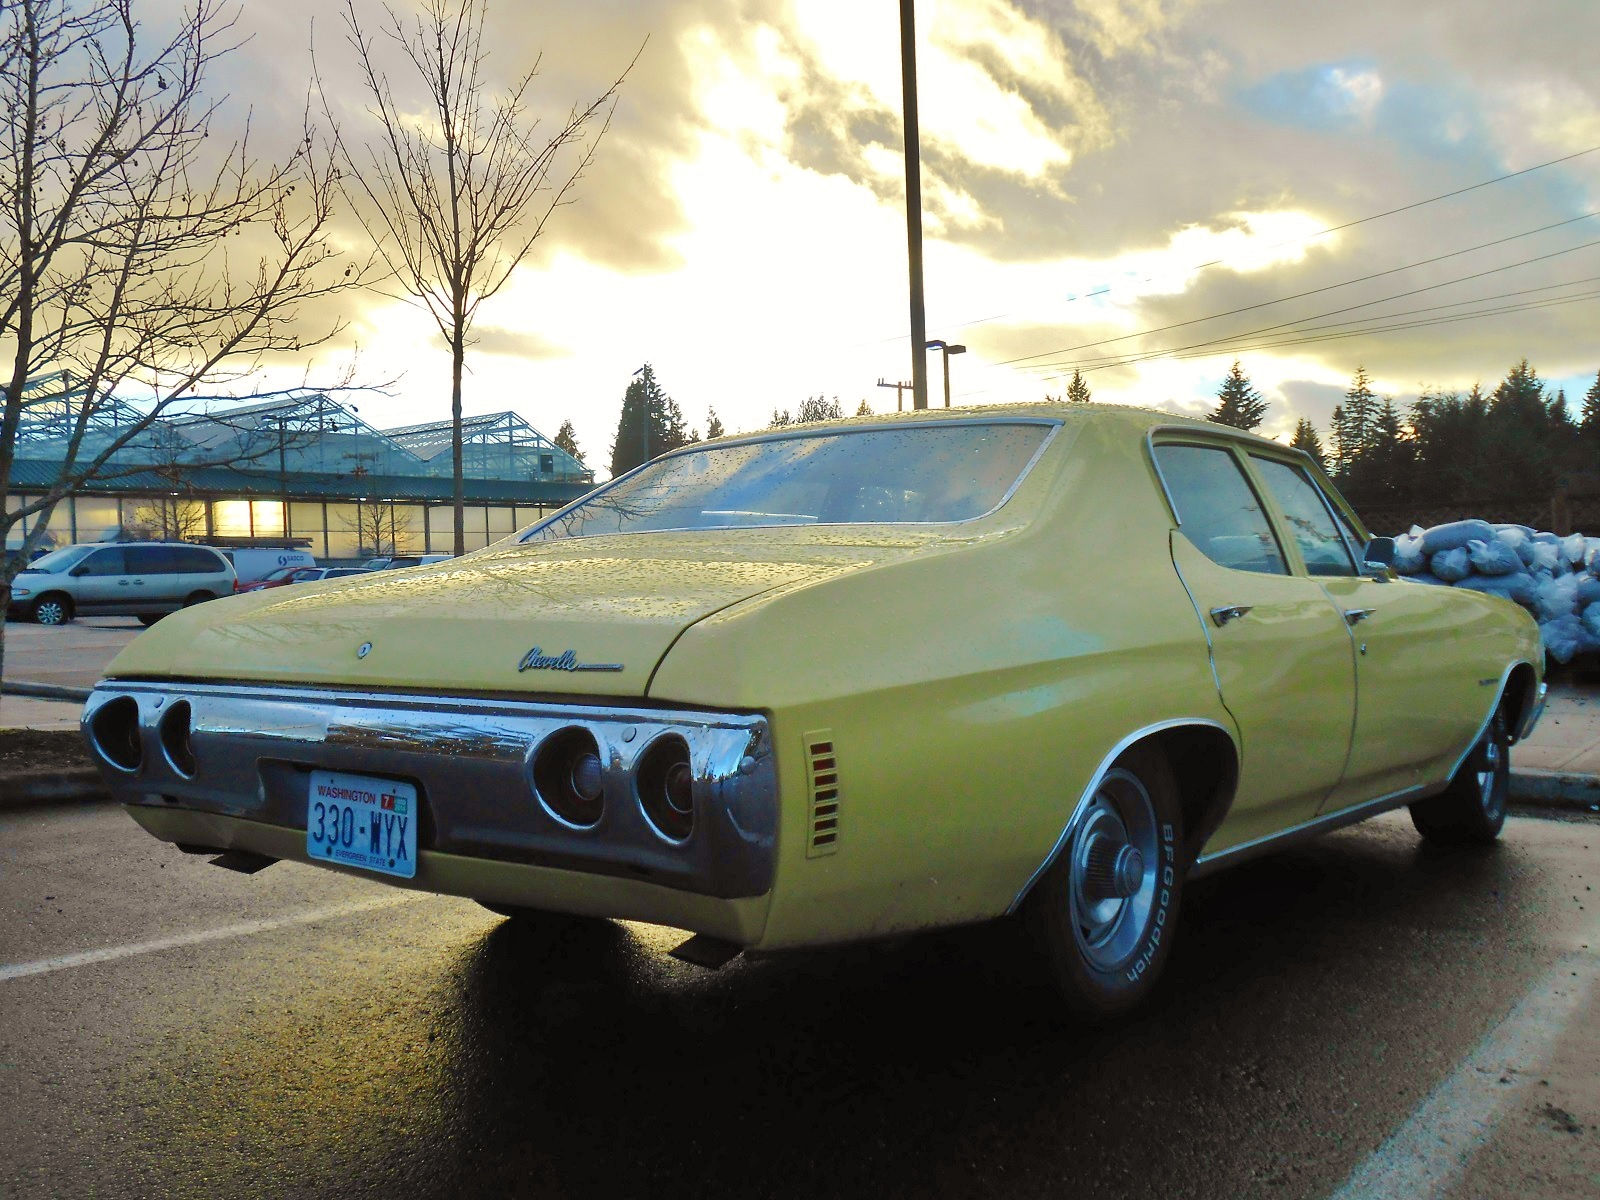 Seattle s Parked Cars  1972 Chevrolet Chevelle Sedan 1972 represented the last year of the 2nd gen Chevelle  and the end of an  era  as the new  73 cars represented a shift toward the personal luxury cars  that